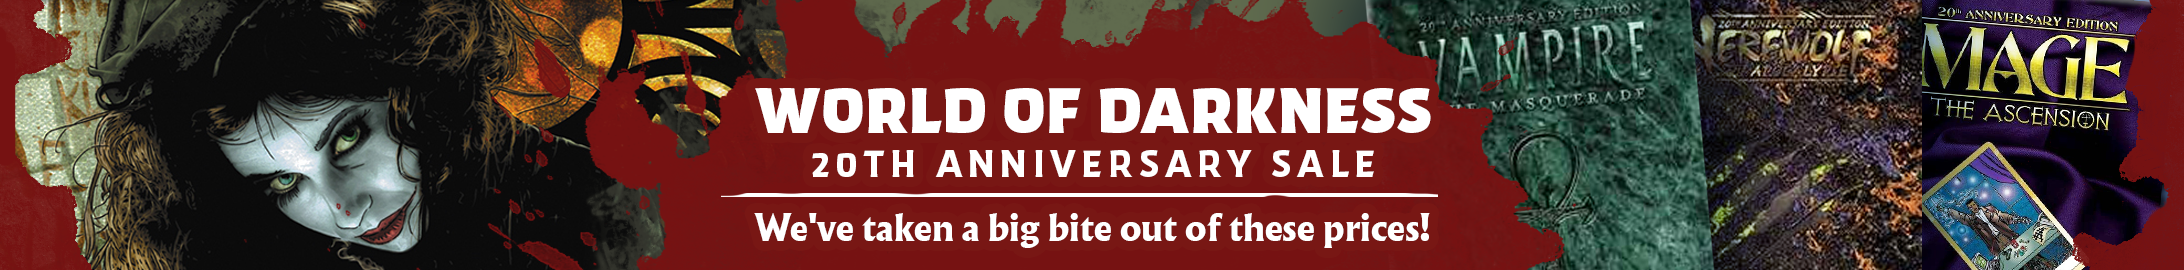 World of Darkness 20th Anniversary Editions Sale!